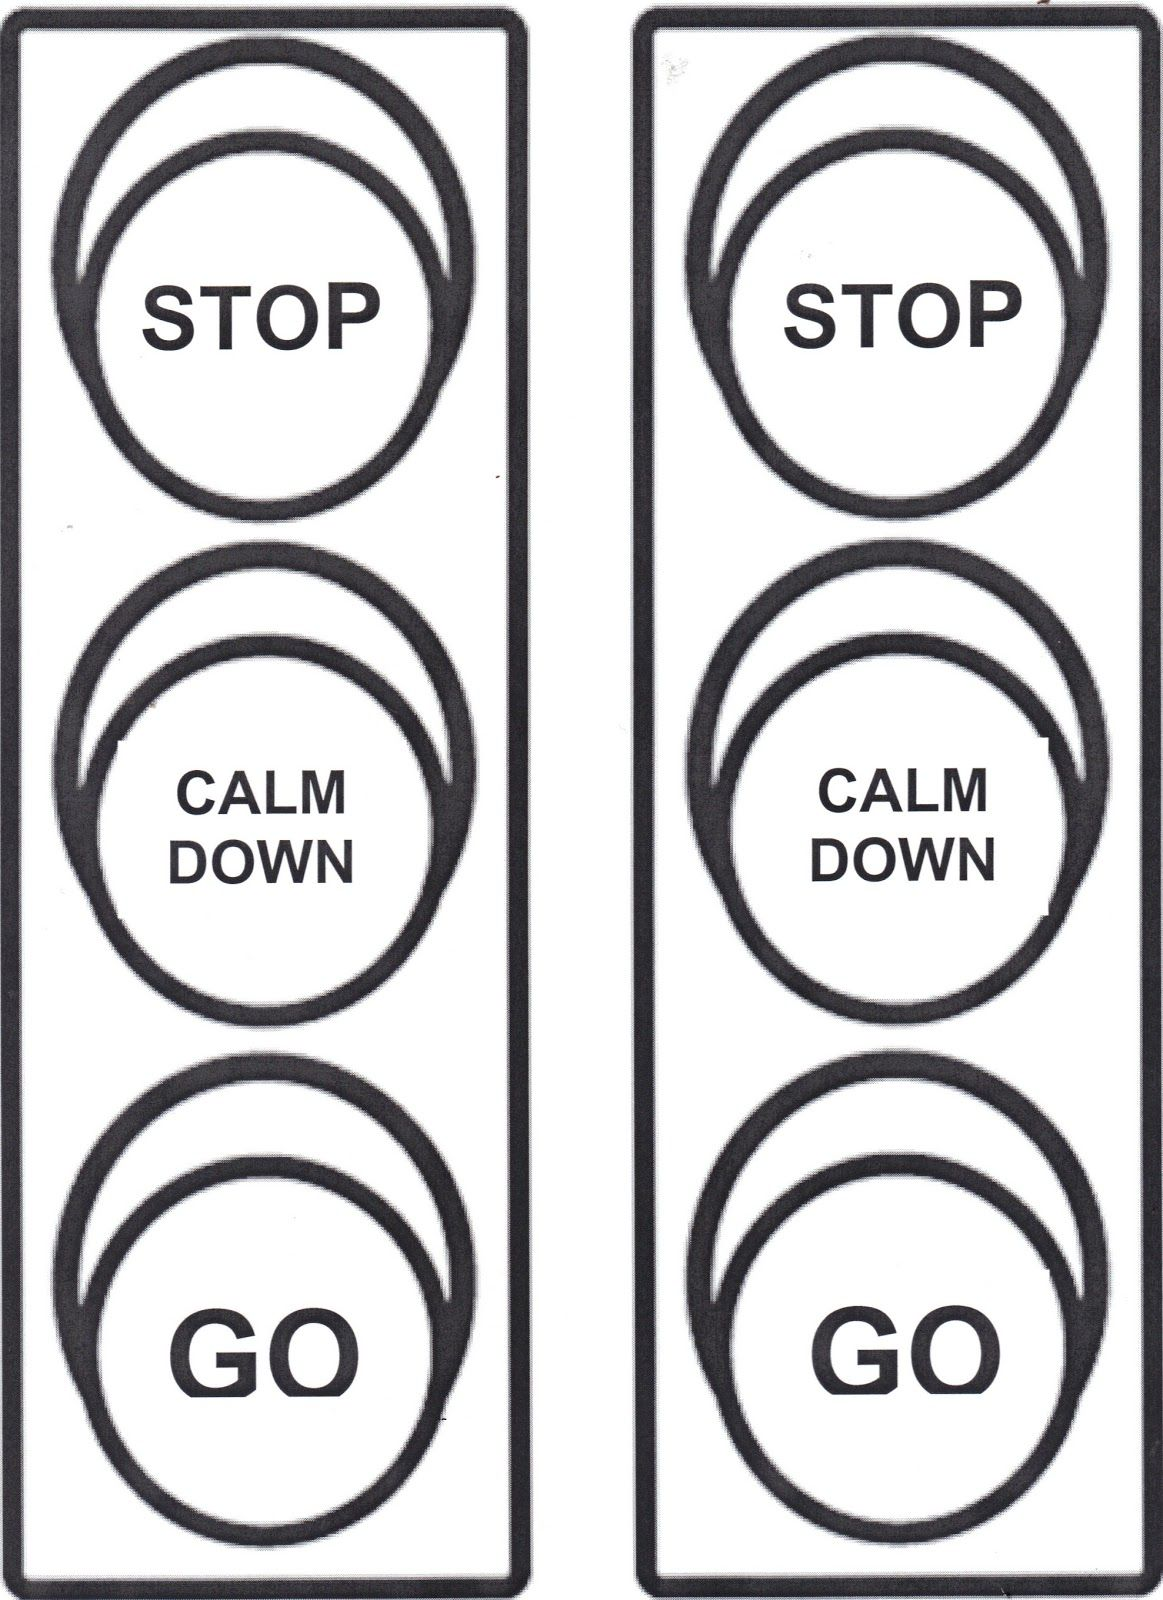 Worksheets Impulse Control Worksheets For Kids angercontrolstoplight jpg pixels tiny people this anger control stoplight serves as a visual aid to remind children think before acting when they are angry